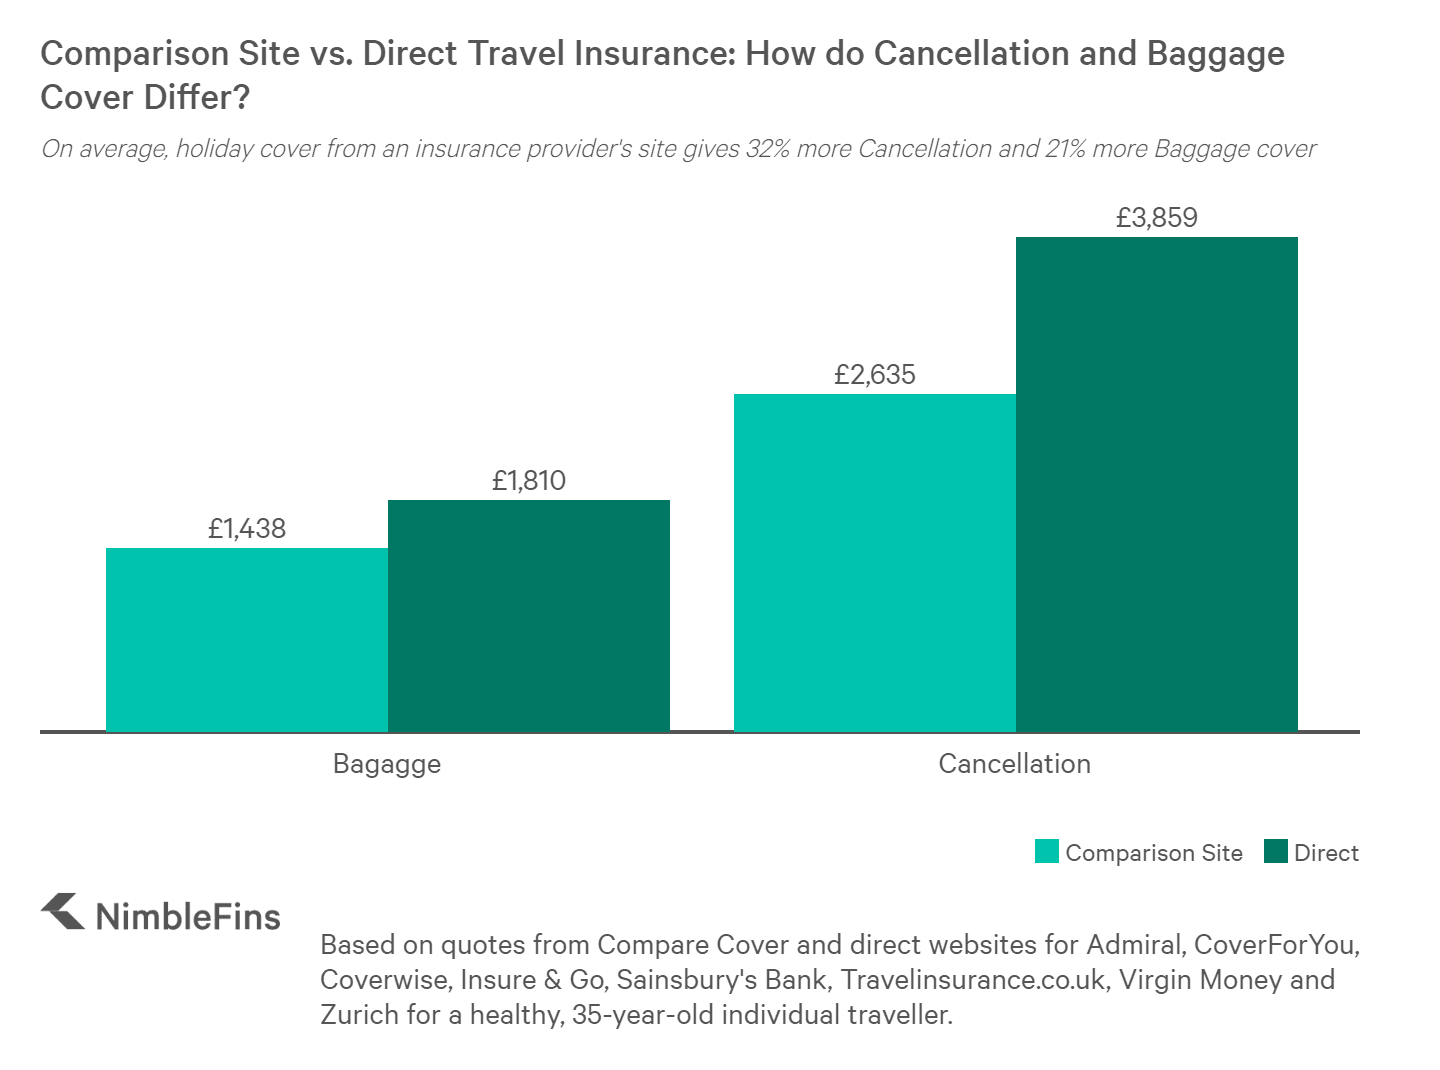 Chart comparing cover limits for Cancellation and Baggage of travel insurance from a comparison site versus an insurer's direct product